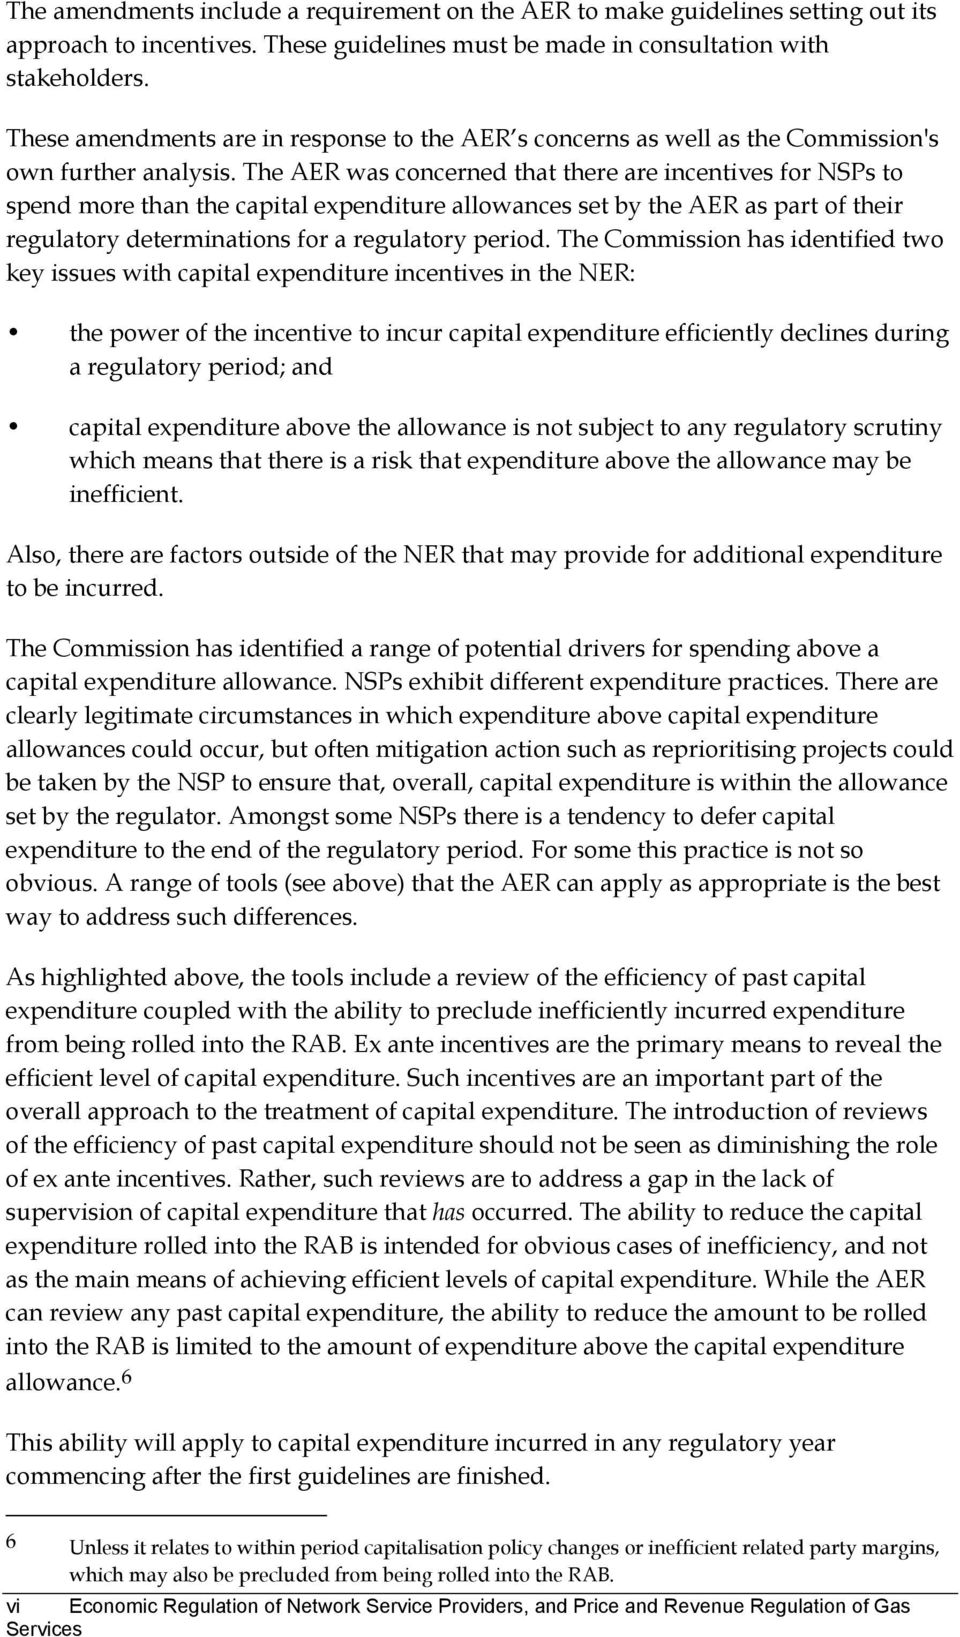 The AER was concerned that there are incentives for NSPs to spend more than the capital expenditure allowances set by the AER as part of their regulatory determinations for a regulatory period.